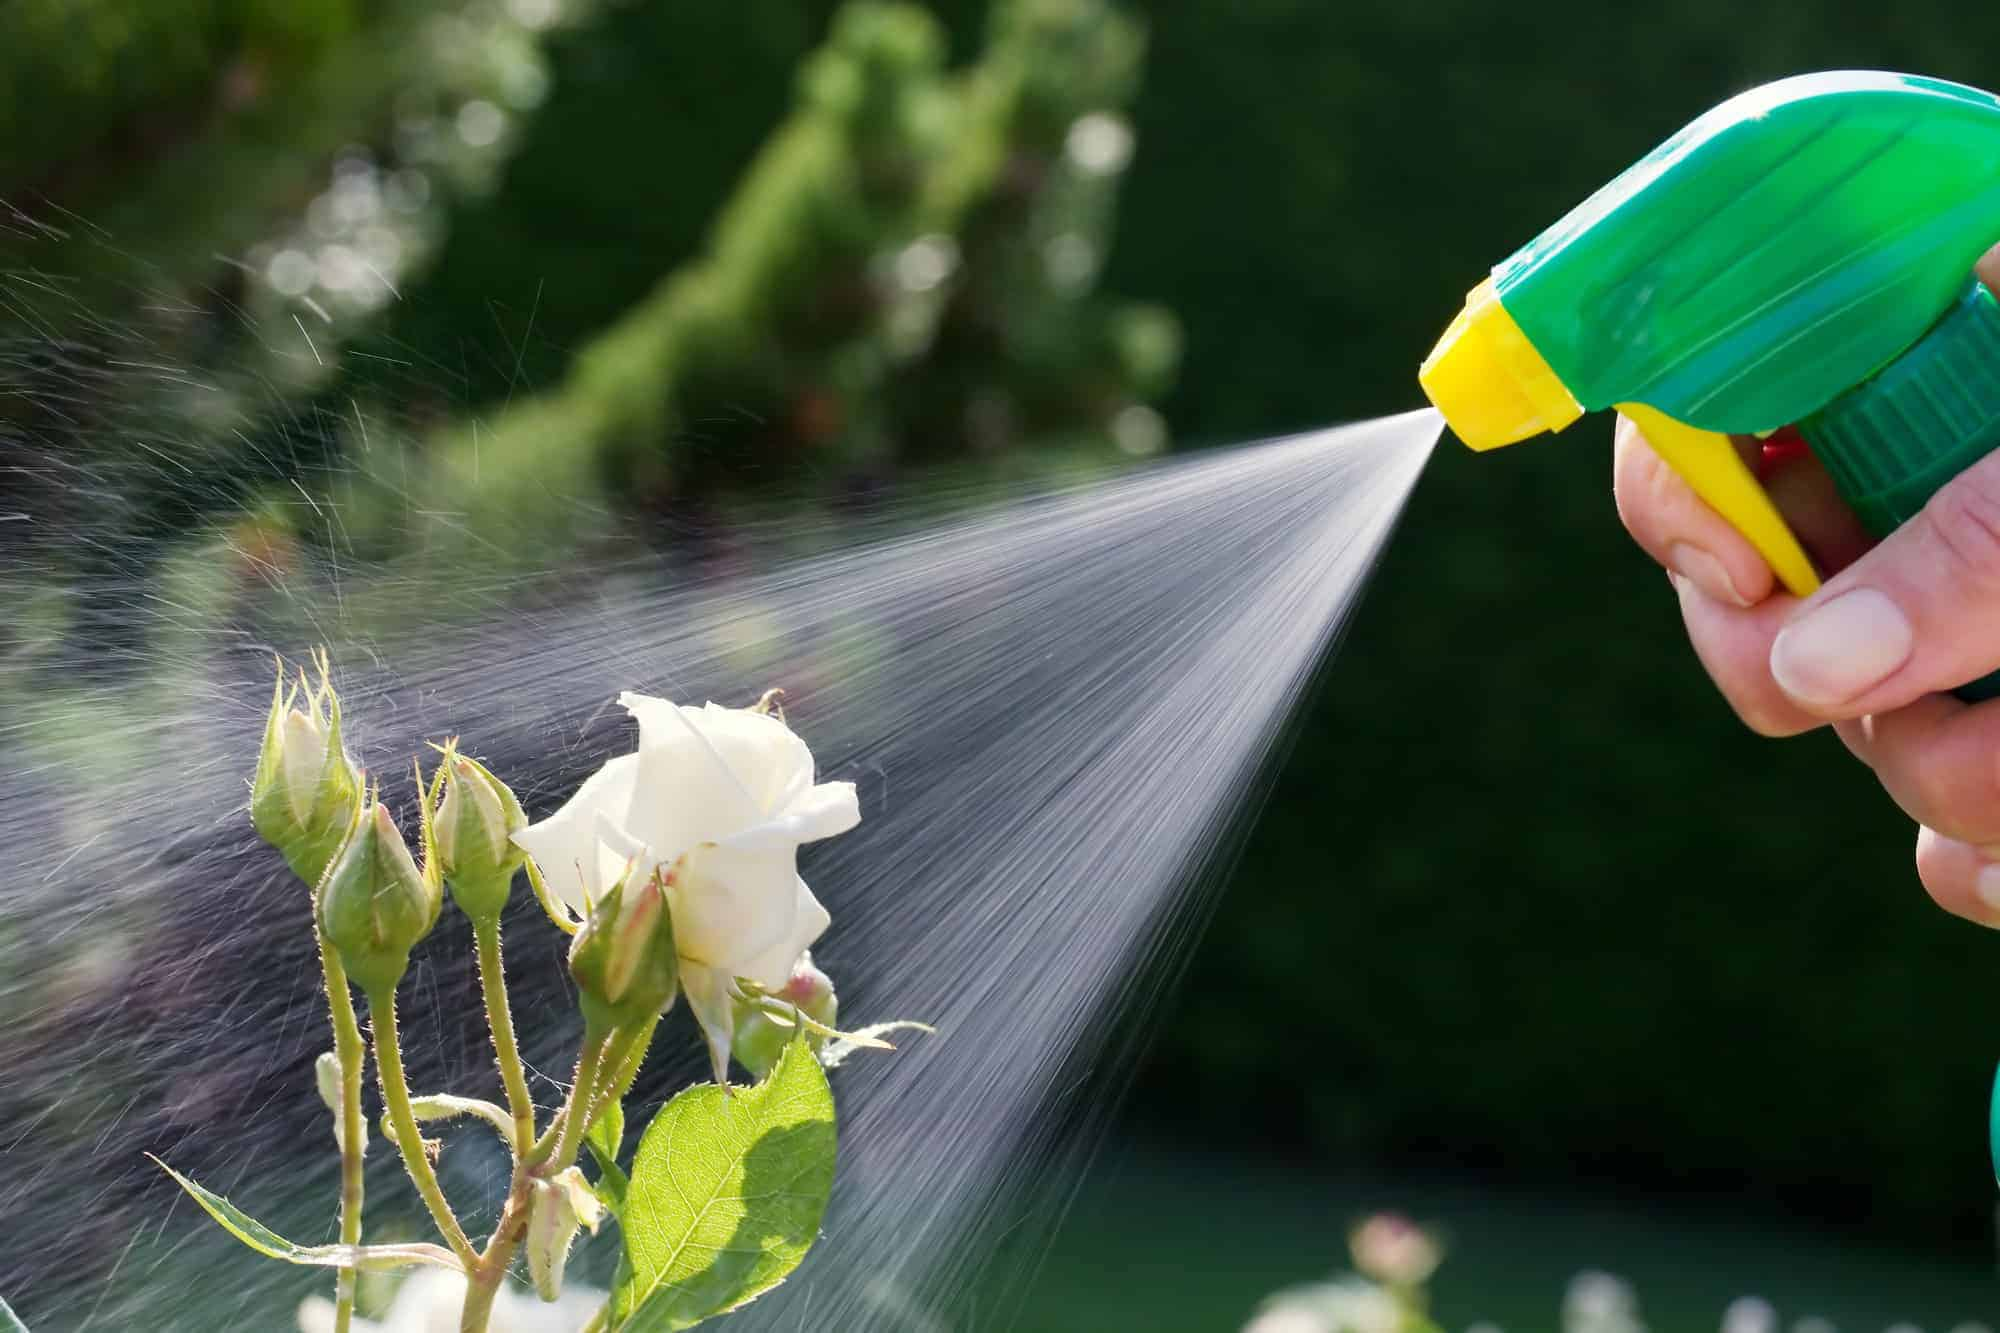 roses in a garden are sprayed with a pesticide